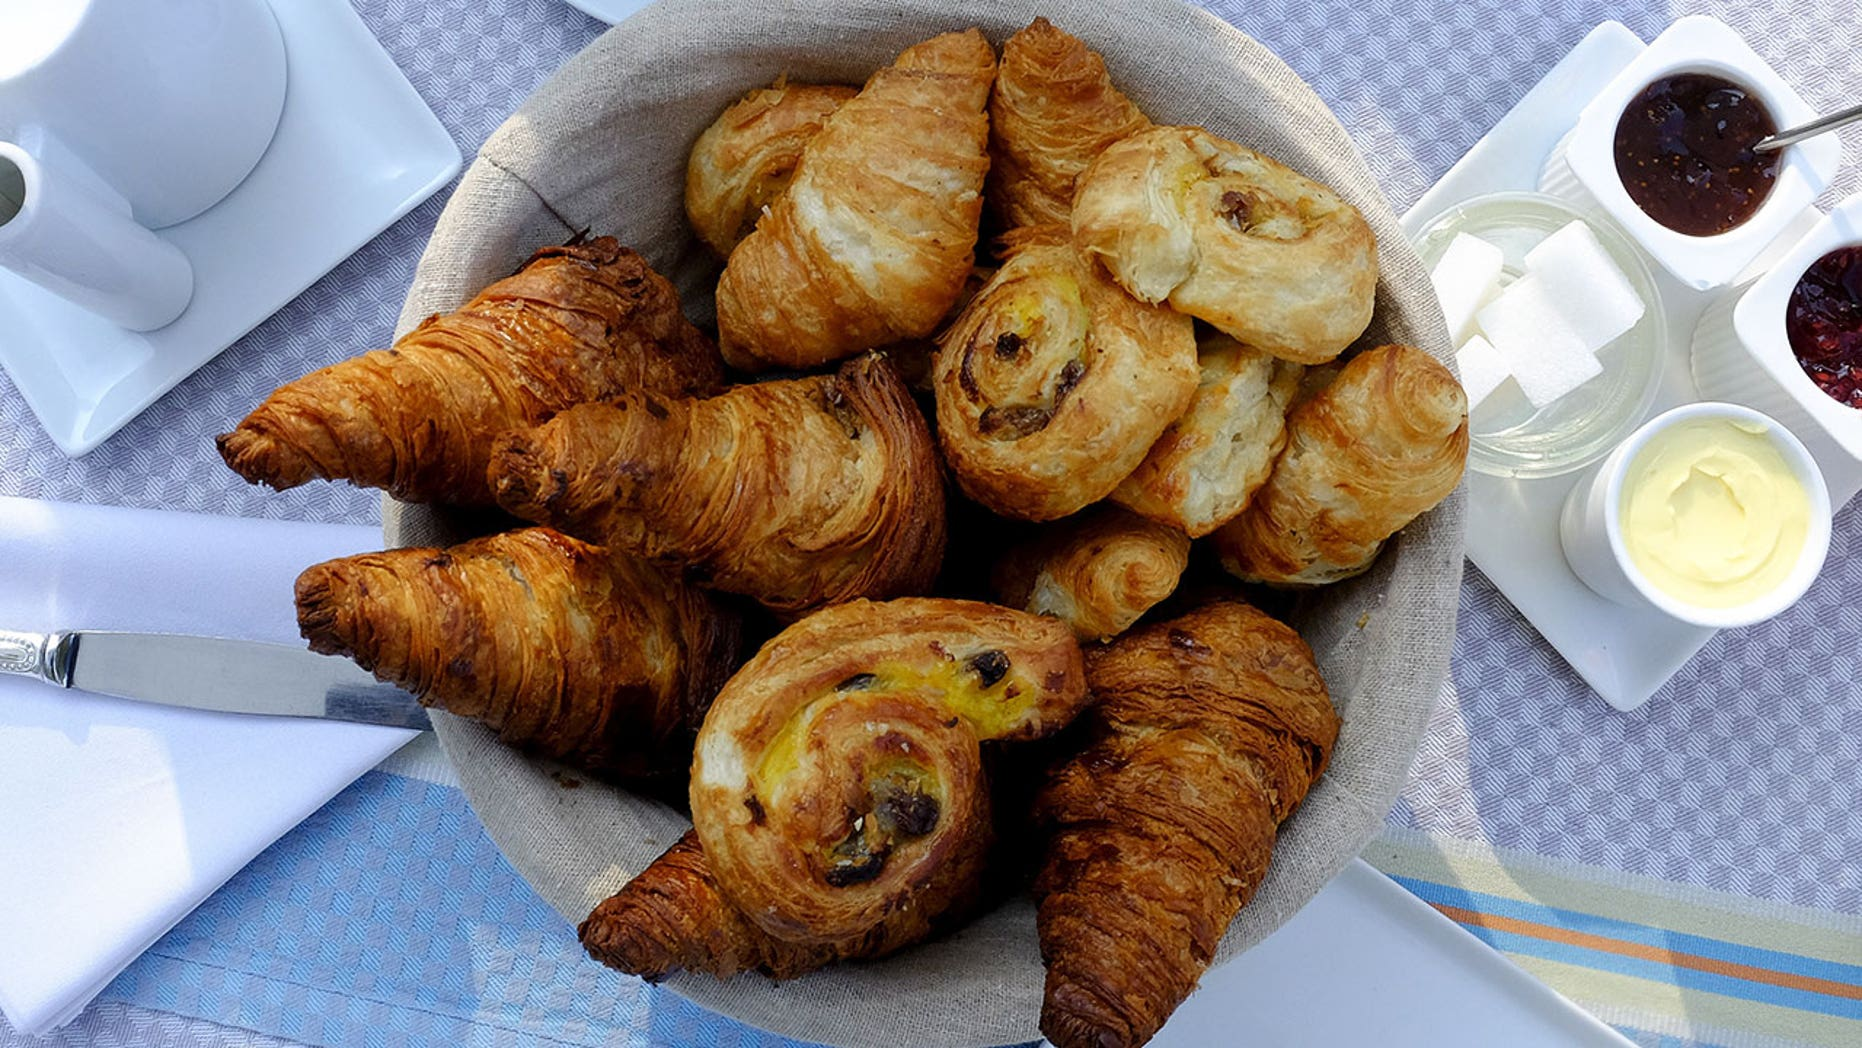 Rising costs of butter in France could threaten the production of croissants